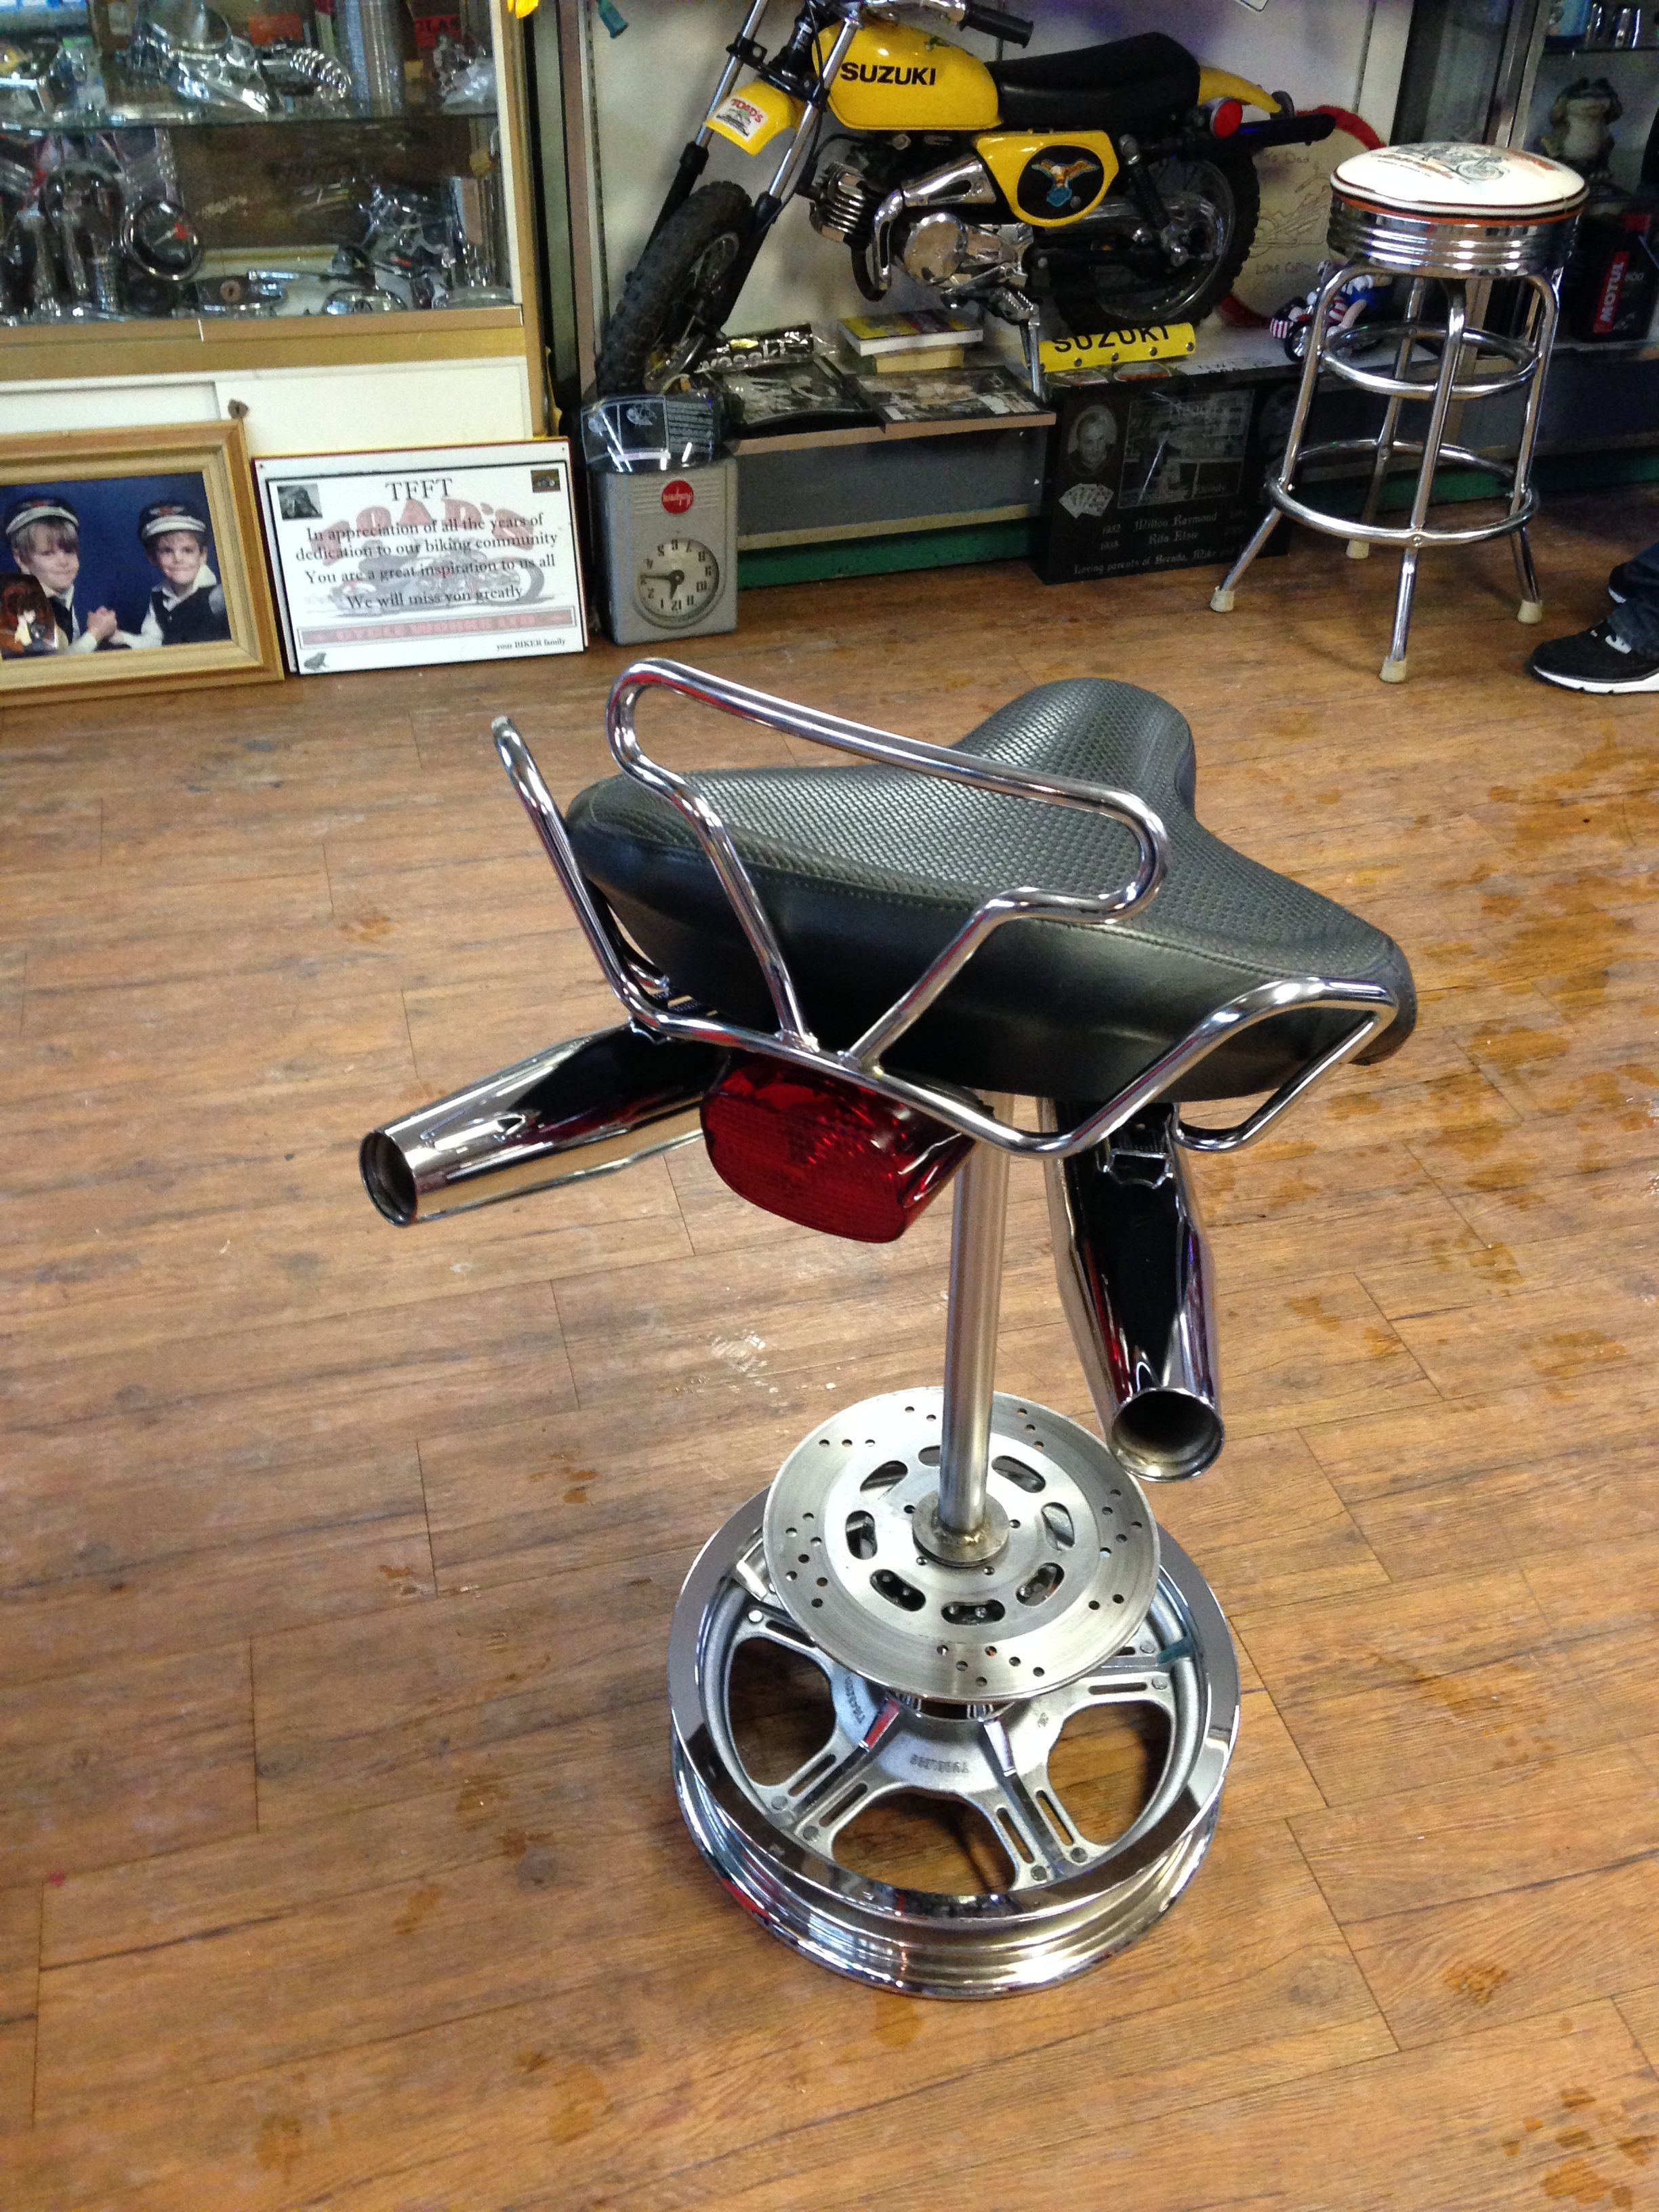 Pleasant Custom Motorcycle Stool Man Cave Basement Bar Stools Caraccident5 Cool Chair Designs And Ideas Caraccident5Info